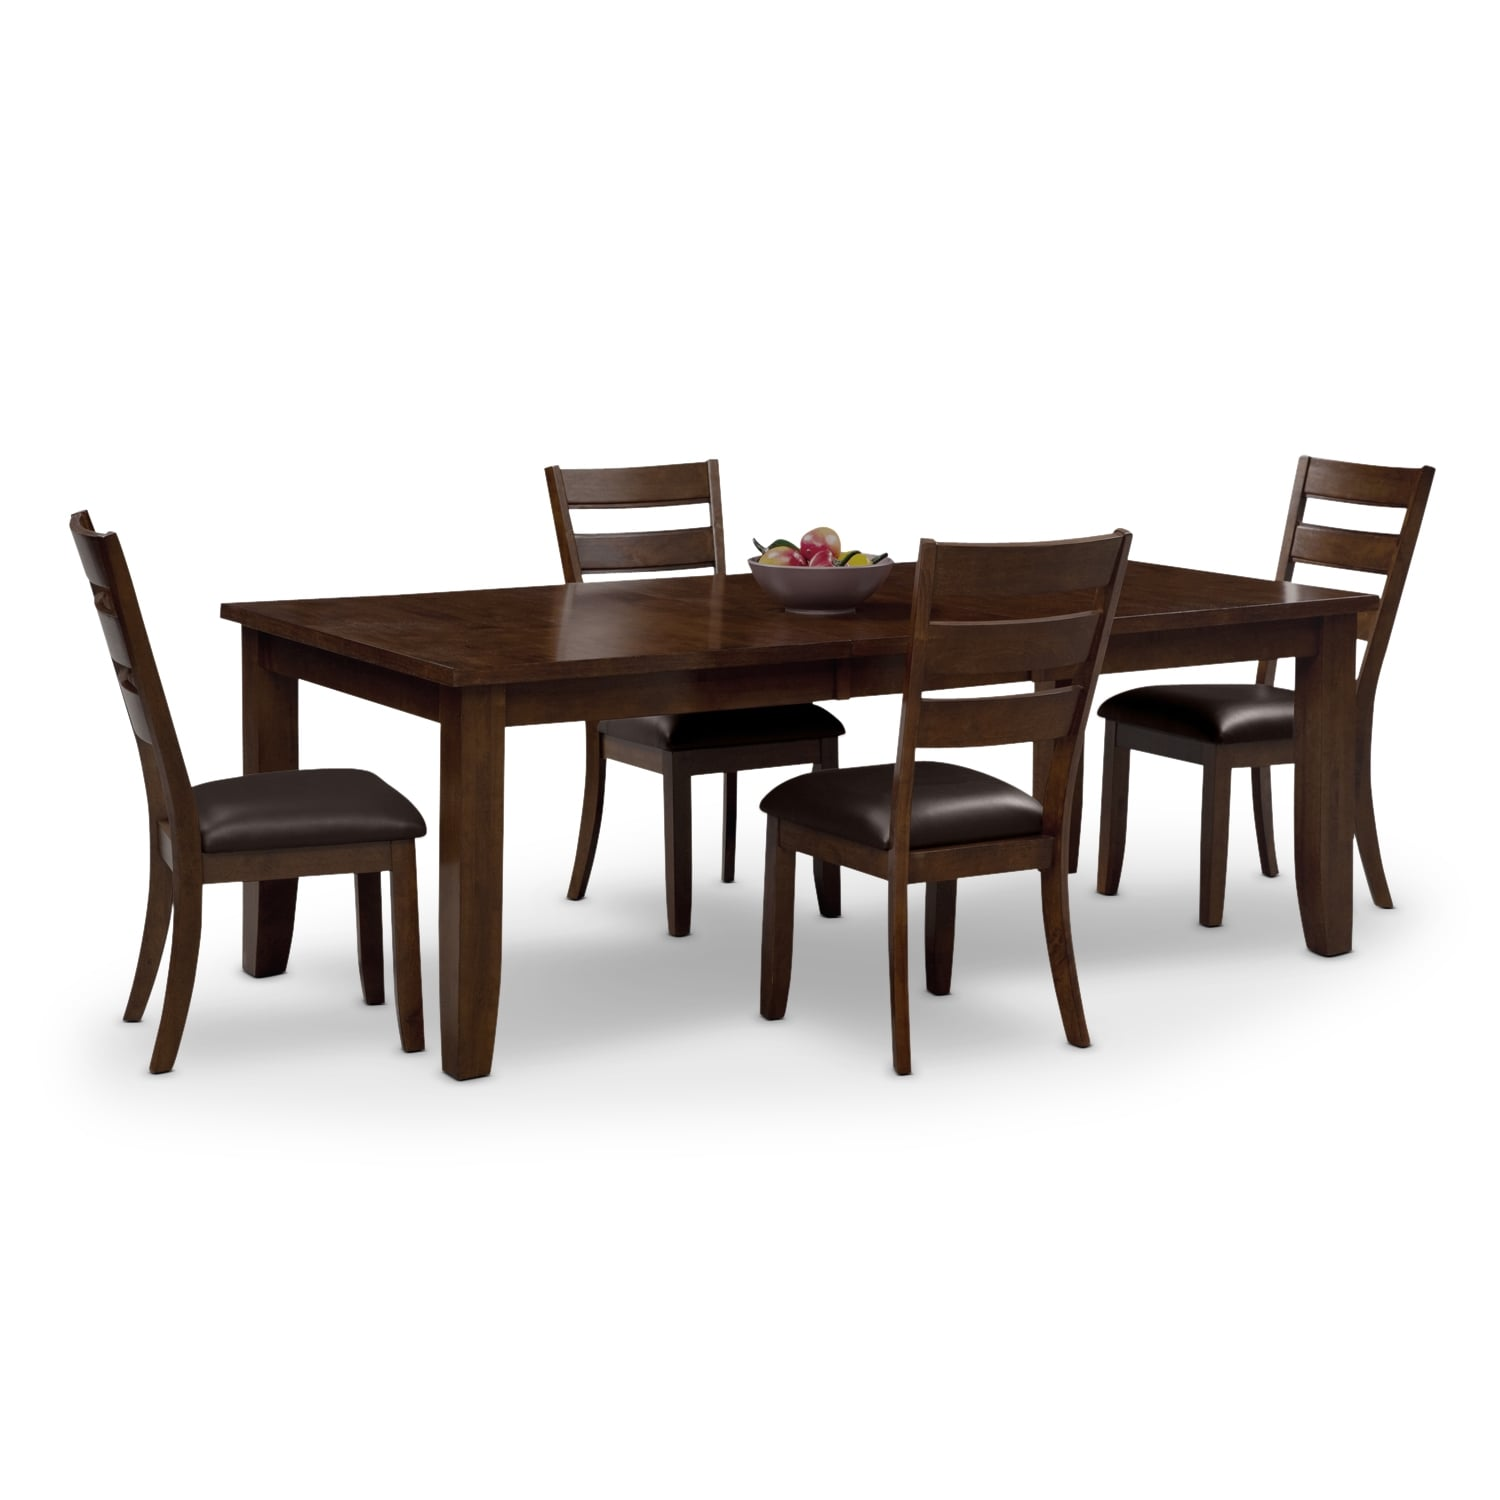 Abaco Table and 4 Chairs - Brown